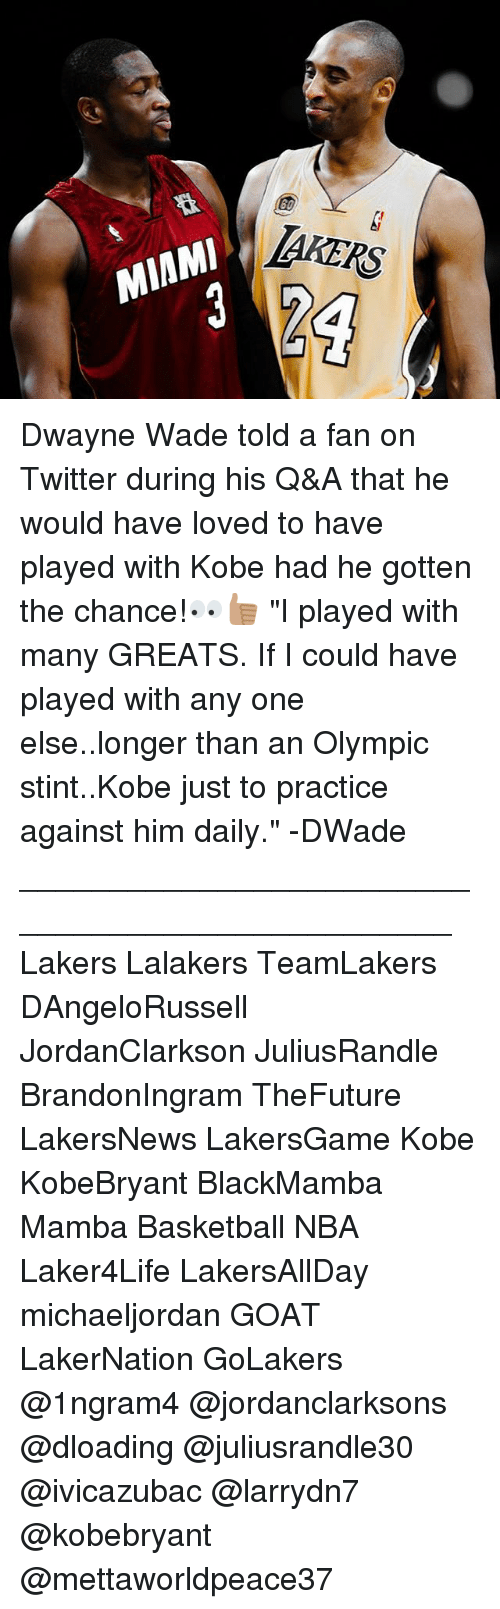 "Basketball, Dwayne Wade, and Los Angeles Lakers: TAKERS Dwayne Wade told a fan on Twitter during his Q&A that he would have loved to have played with Kobe had he gotten the chance!👀👍🏽 ""I played with many GREATS. If I could have played with any one else..longer than an Olympic stint..Kobe just to practice against him daily."" -DWade _________________________________________________ Lakers Lalakers TeamLakers DAngeloRussell JordanClarkson JuliusRandle BrandonIngram TheFuture LakersNews LakersGame Kobe KobeBryant BlackMamba Mamba Basketball NBA Laker4Life LakersAllDay michaeljordan GOAT LakerNation GoLakers @1ngram4 @jordanclarksons @dloading @juliusrandle30 @ivicazubac @larrydn7 @kobebryant @mettaworldpeace37"